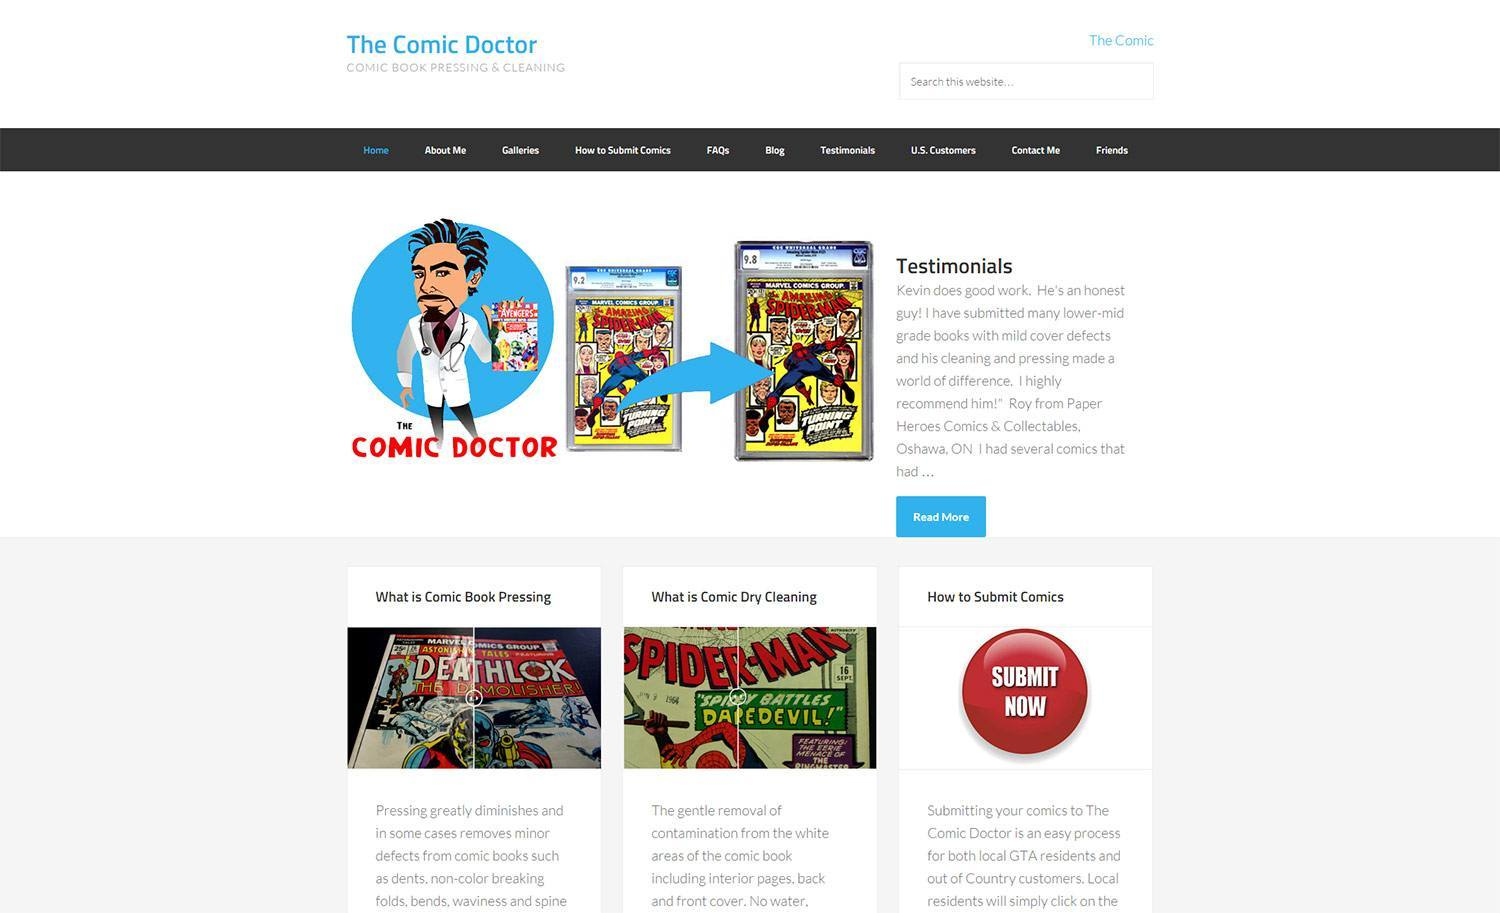 Website Design and SEO Project - Comic Doctor